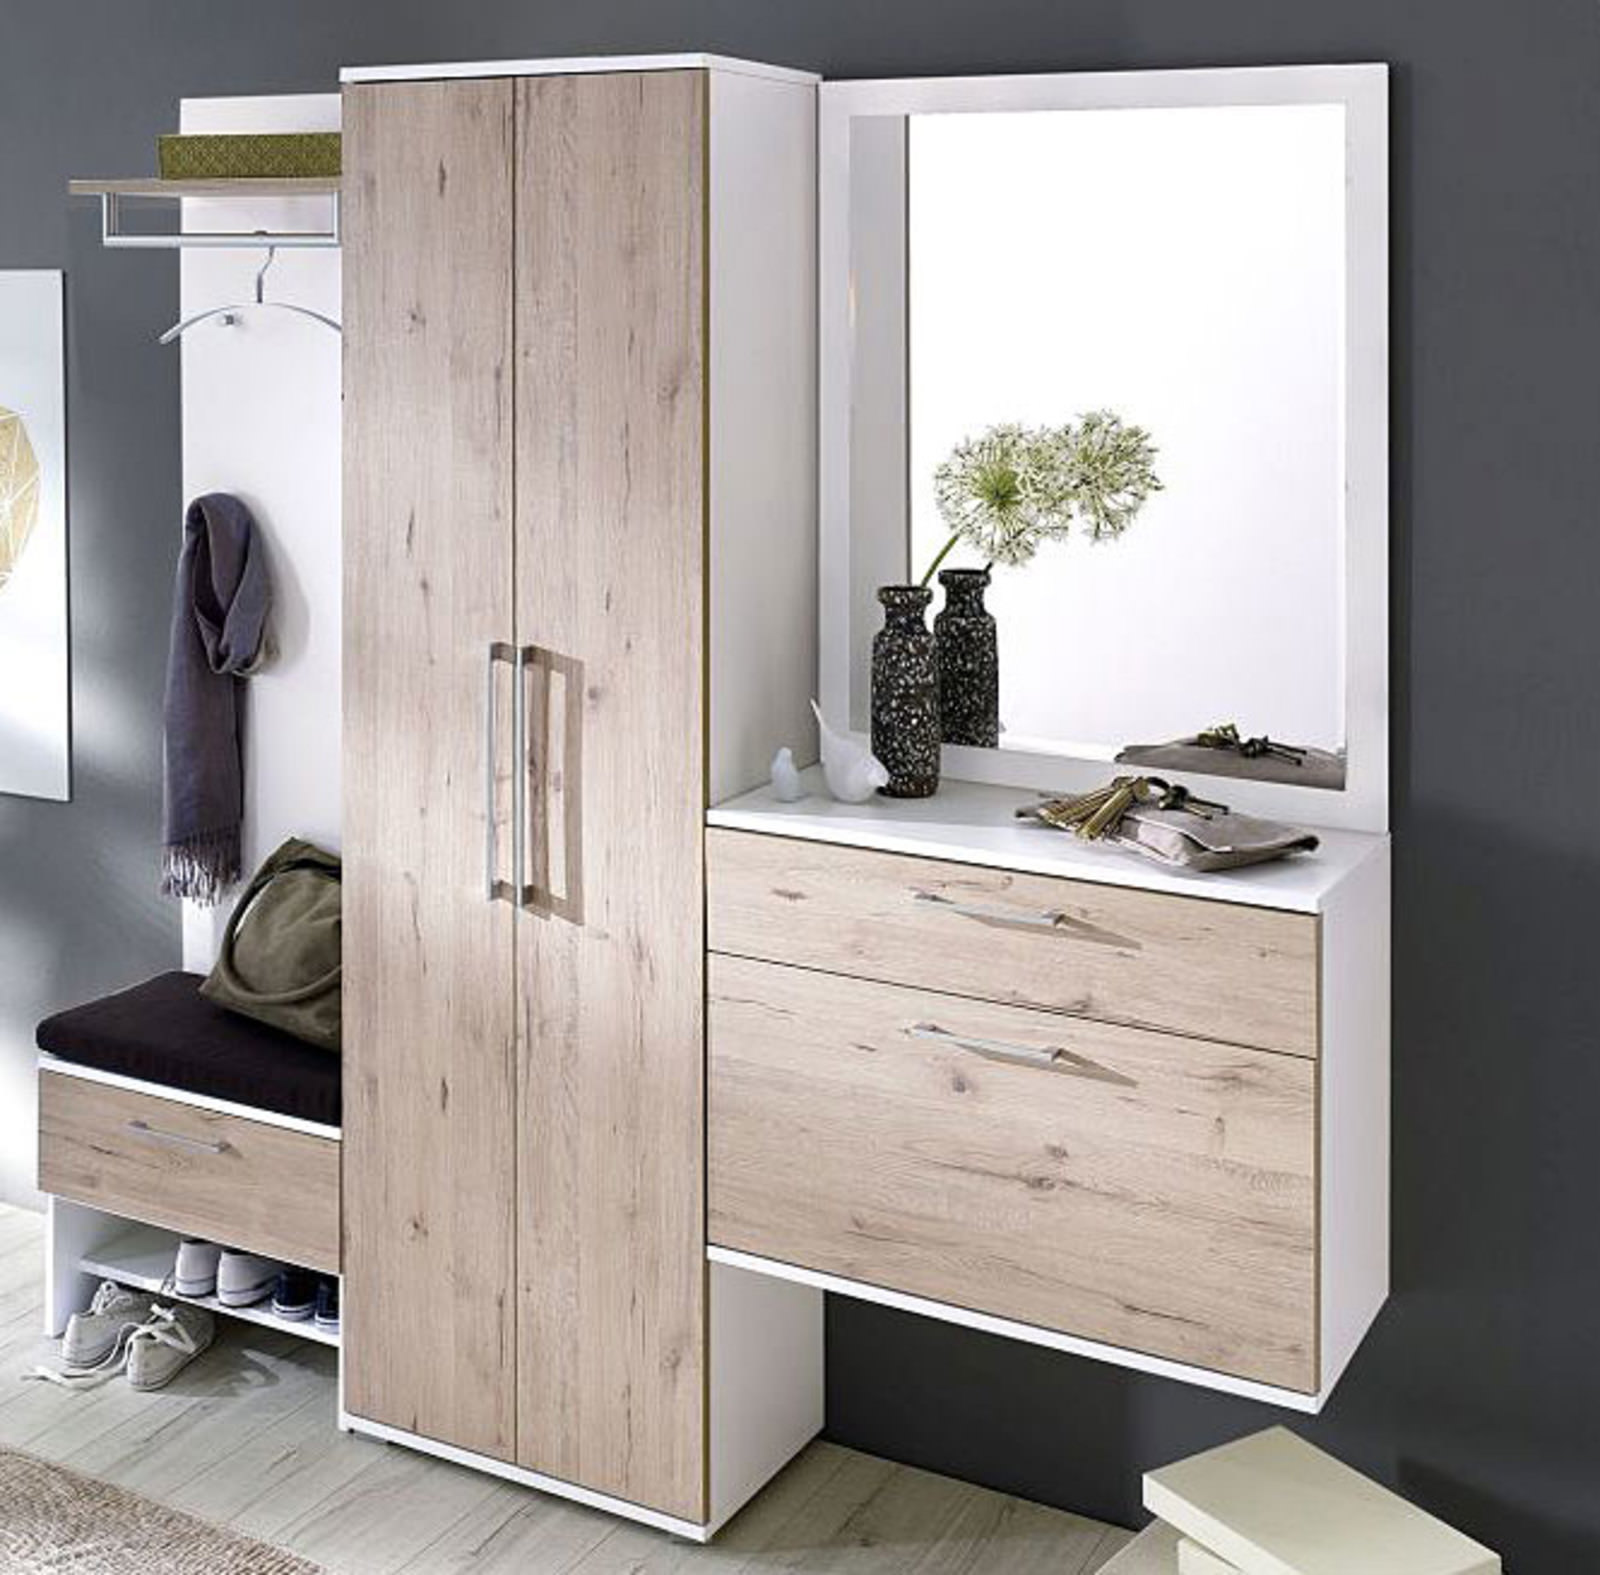 vito garderobenkombination online entdecken schaffrath ihr m belhaus. Black Bedroom Furniture Sets. Home Design Ideas